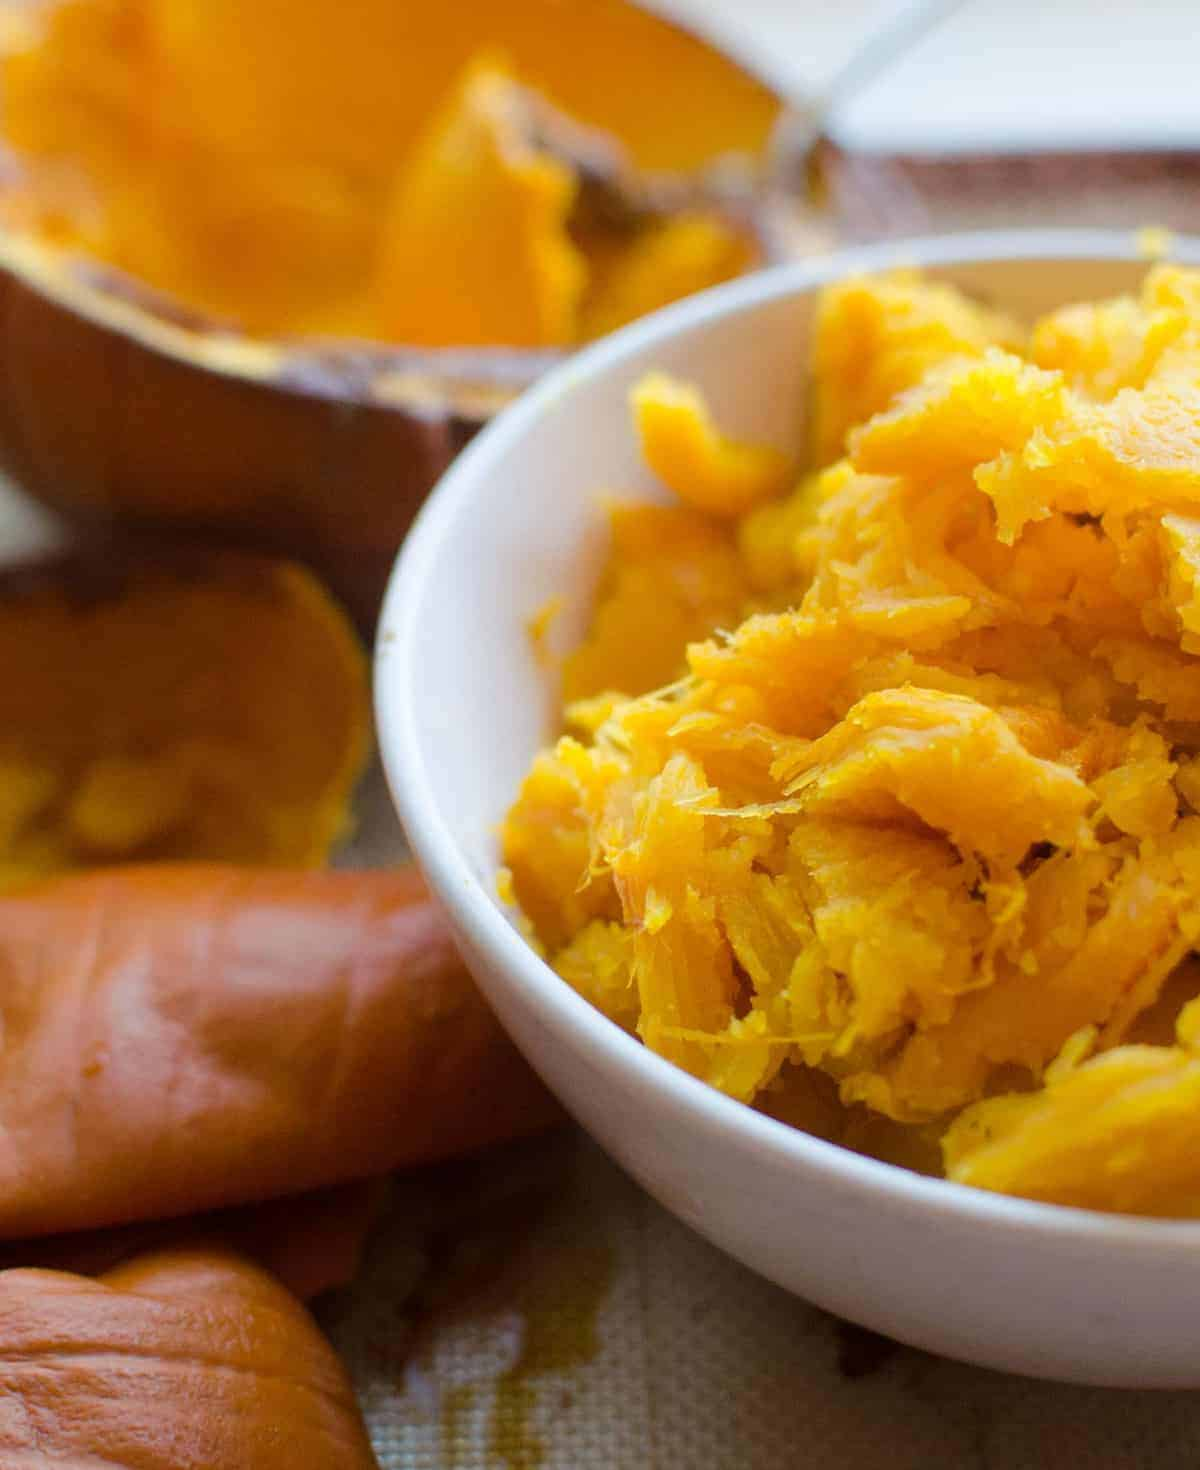 Homemade pumpkin puree is as simple as roasting, scooping, and blending a fresh pumpkin into a simple puree. You are going to love it's bright color, smooth texture, and simple preparation.